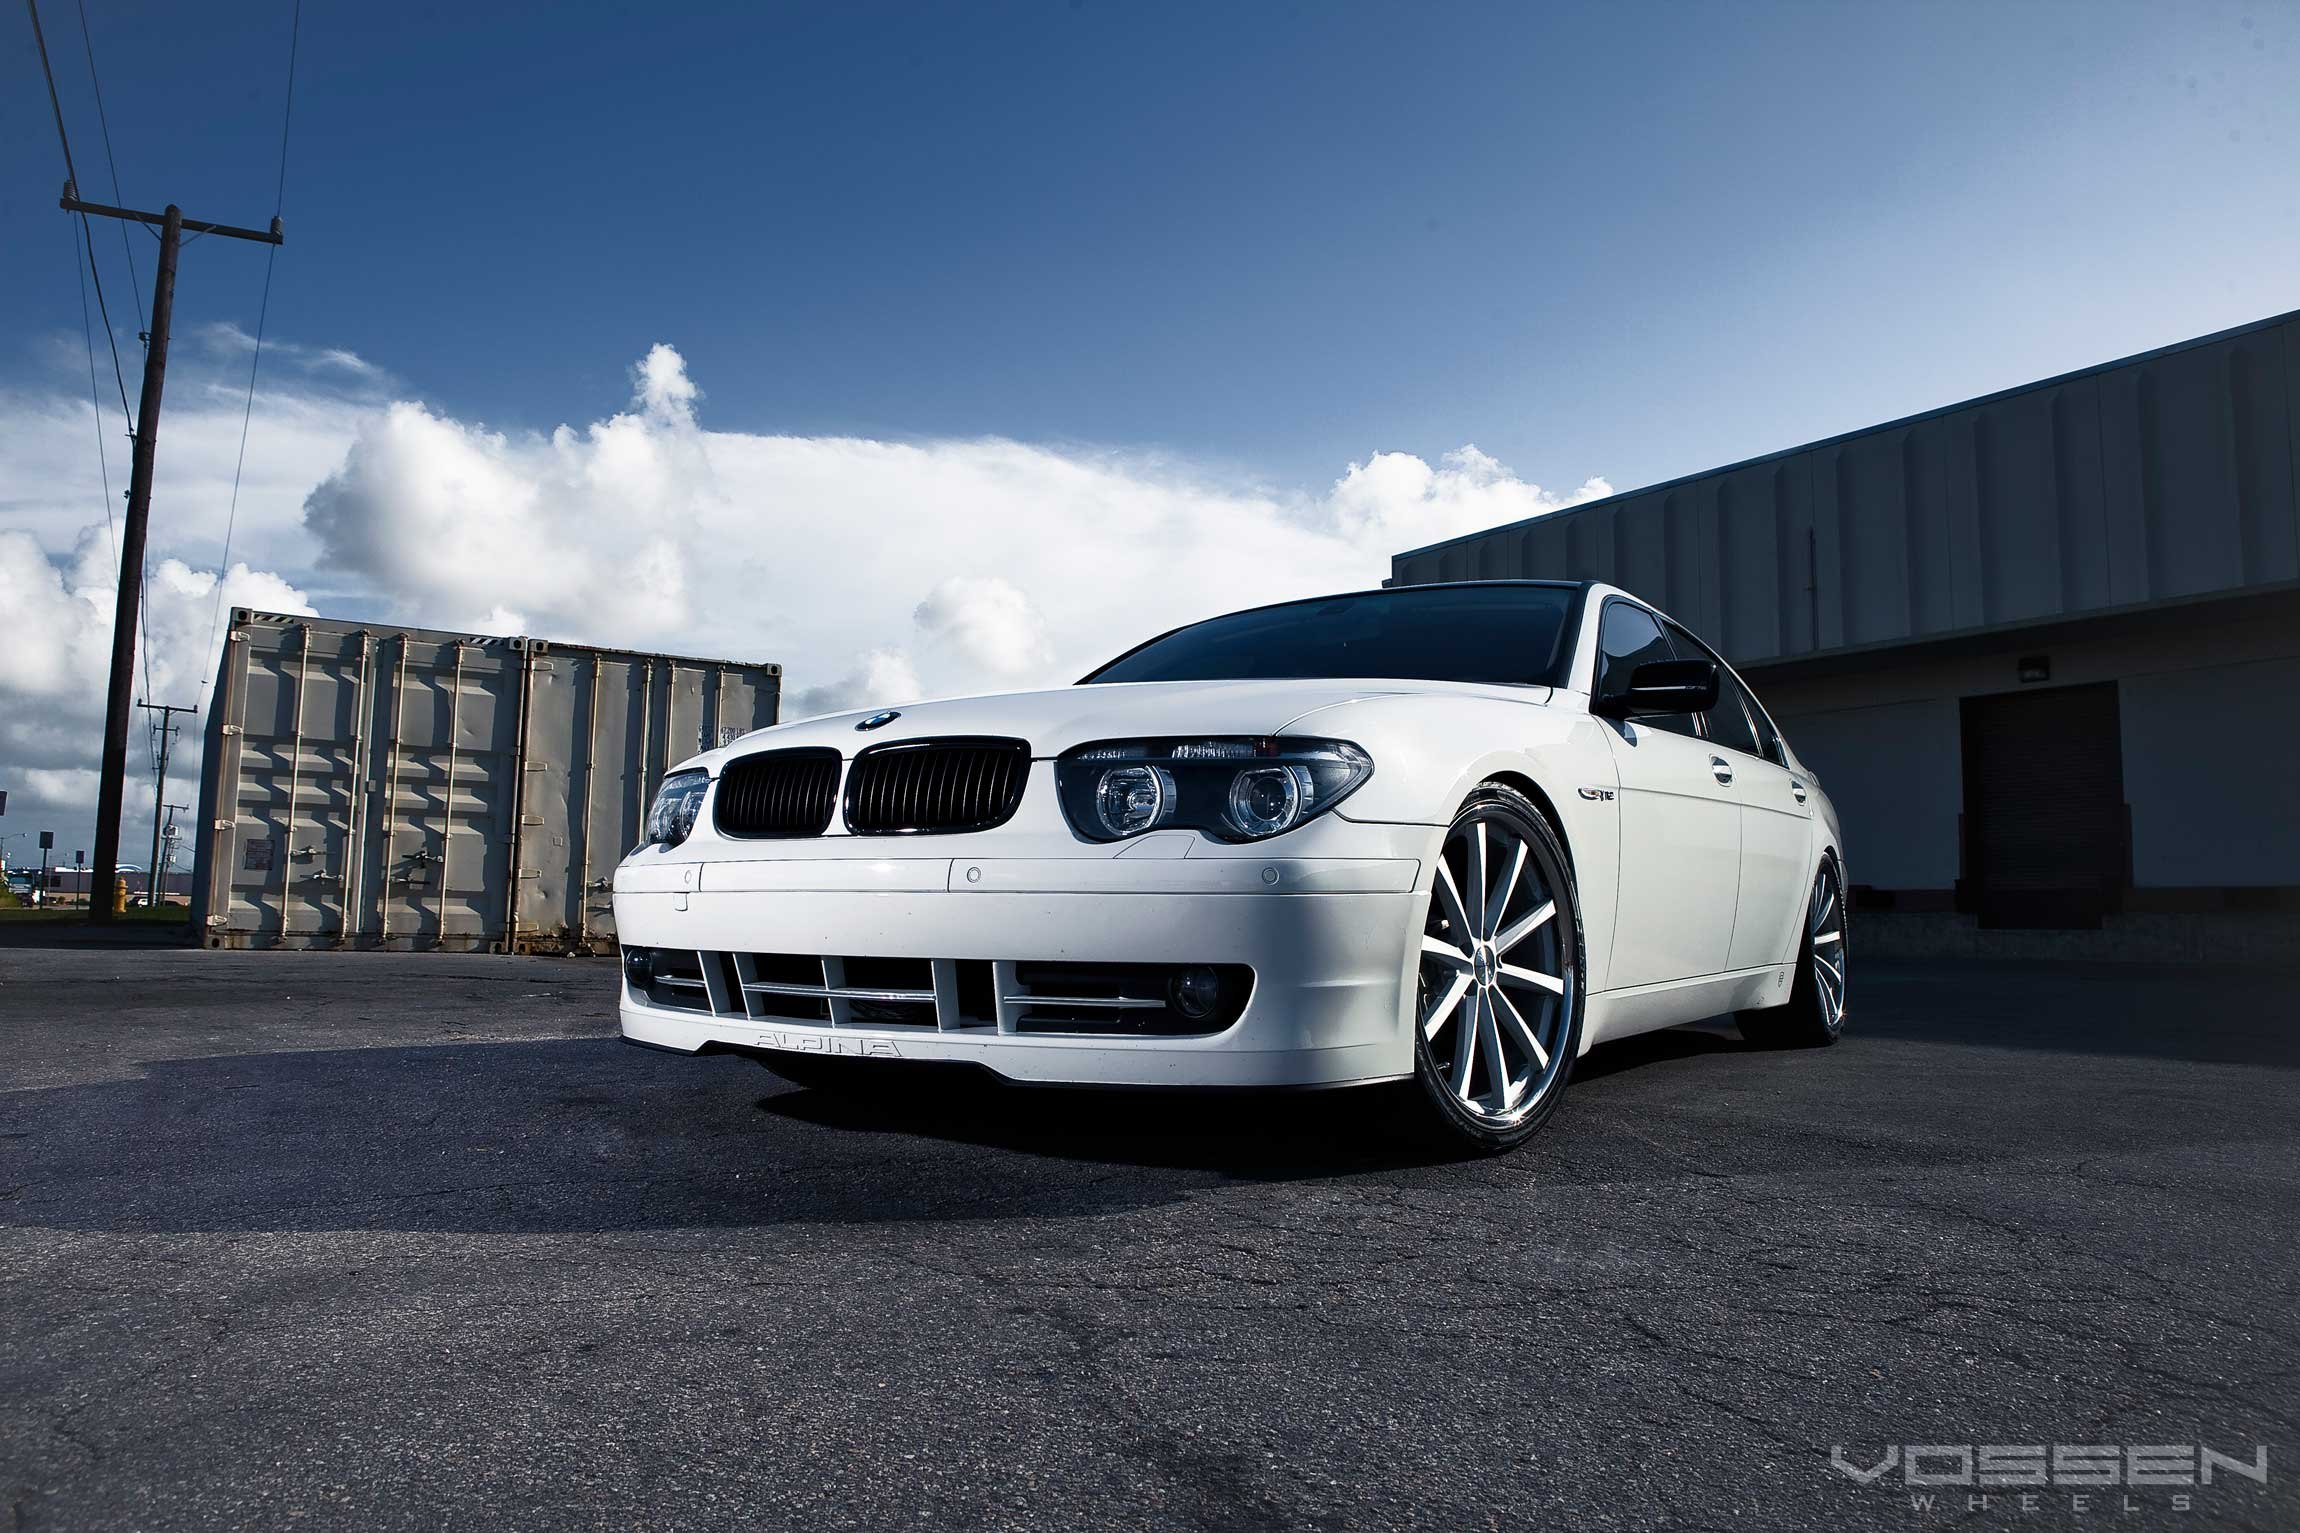 Neat Tuning Kit For White Bmw 7 Series Carid Com Gallery